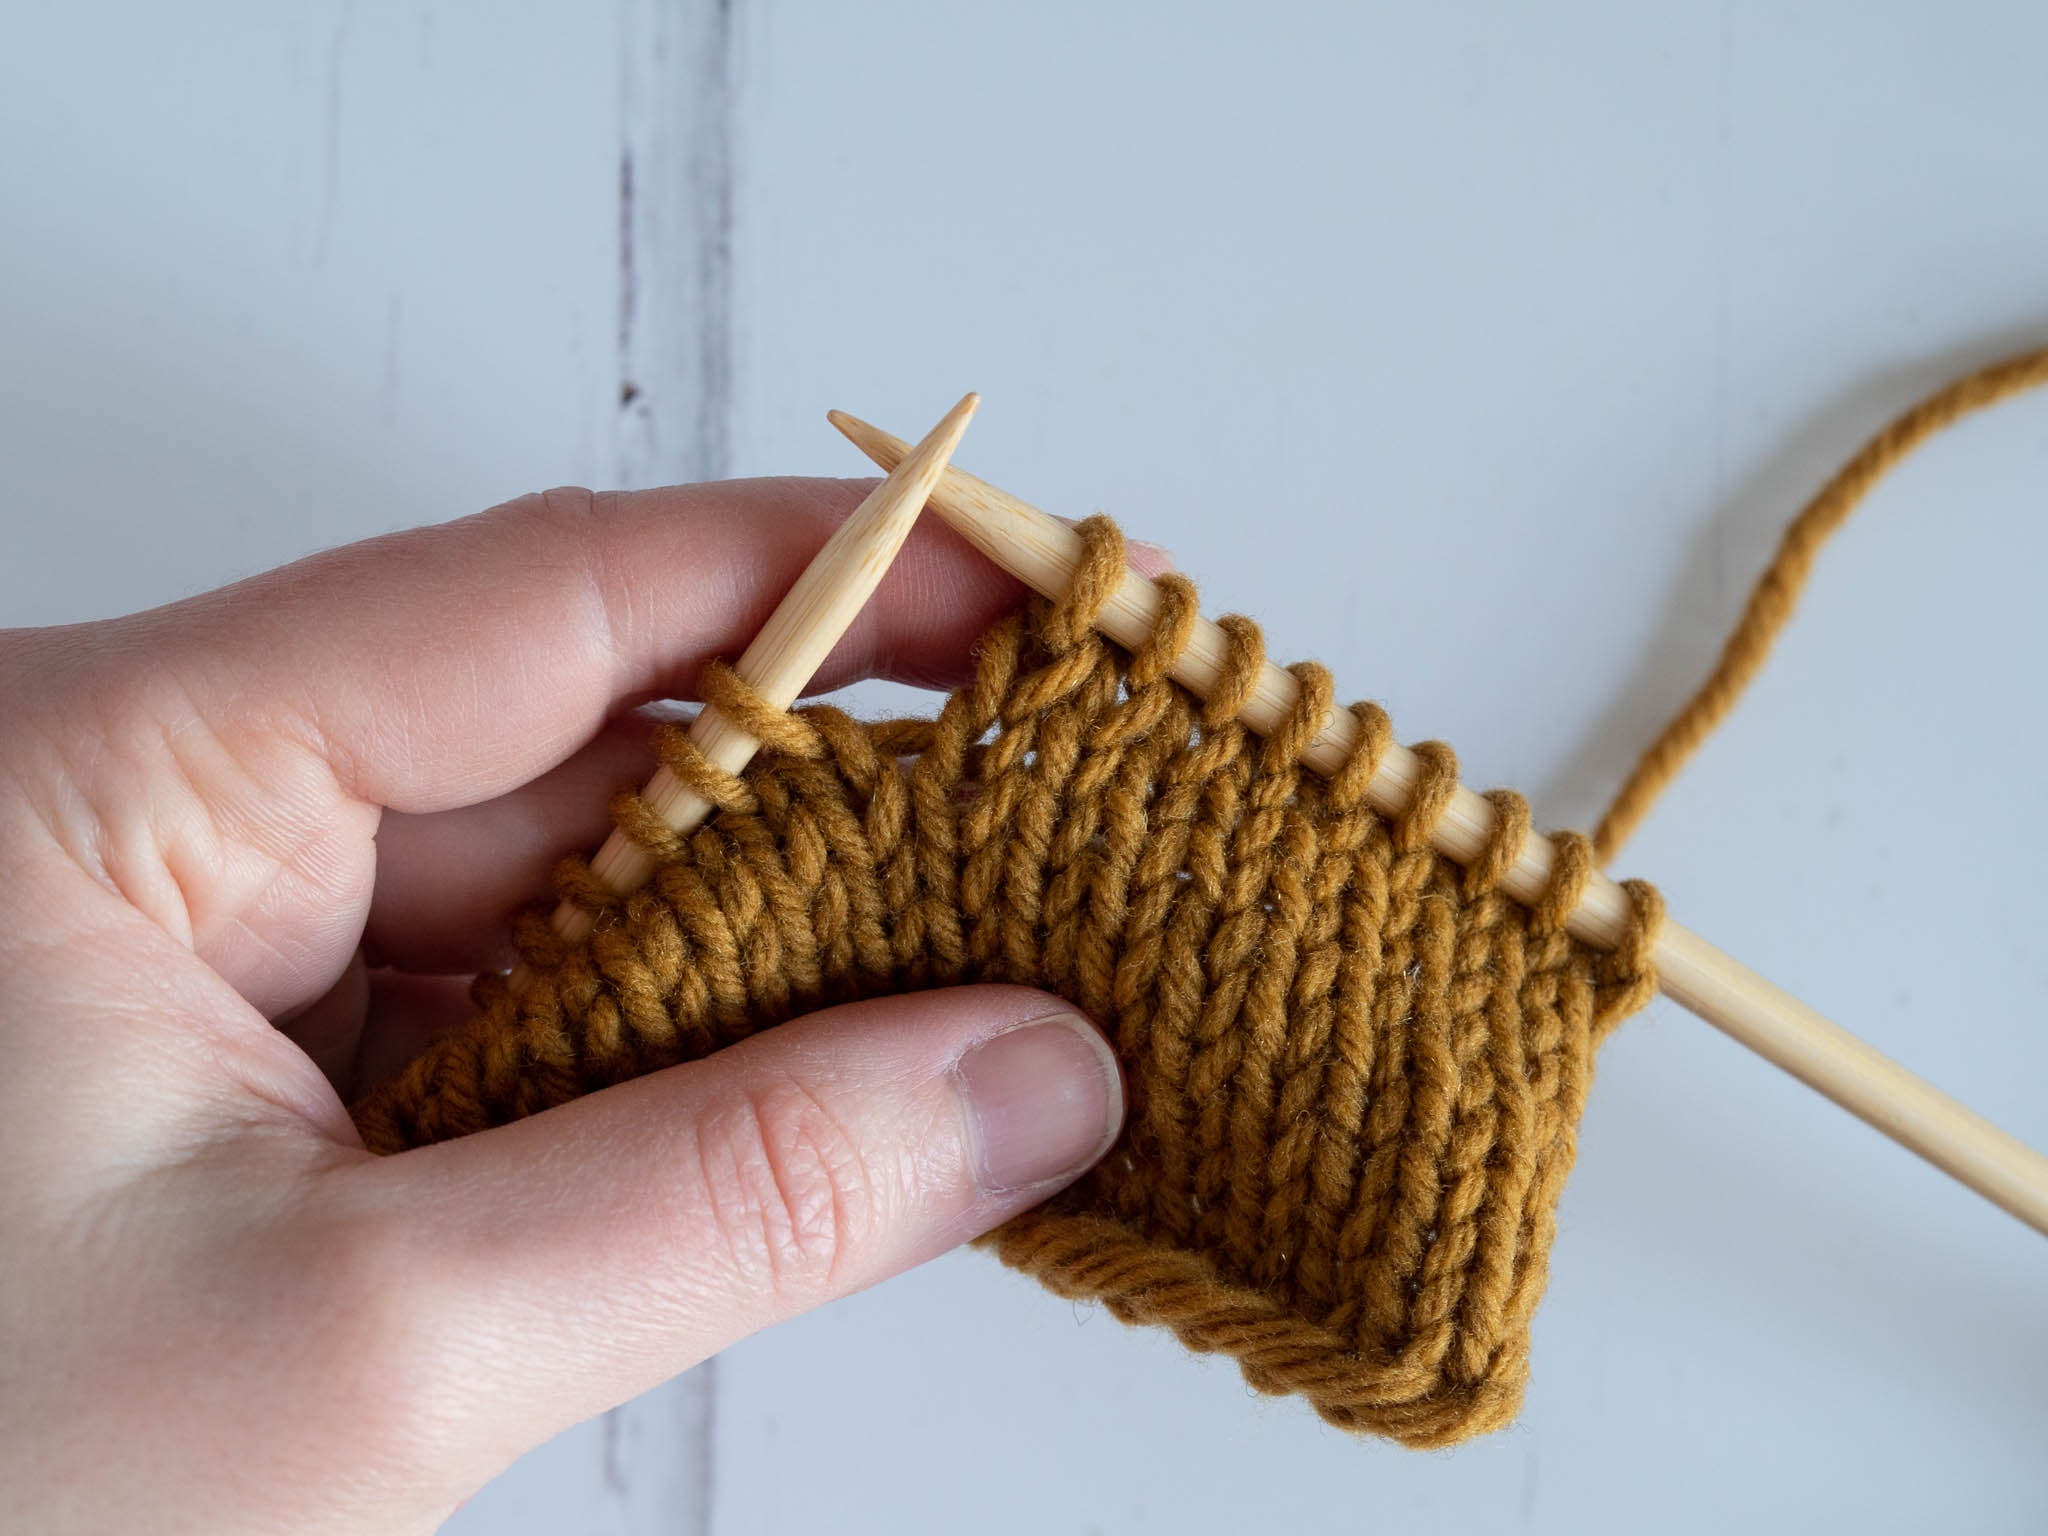 completed knit stitches on right needle